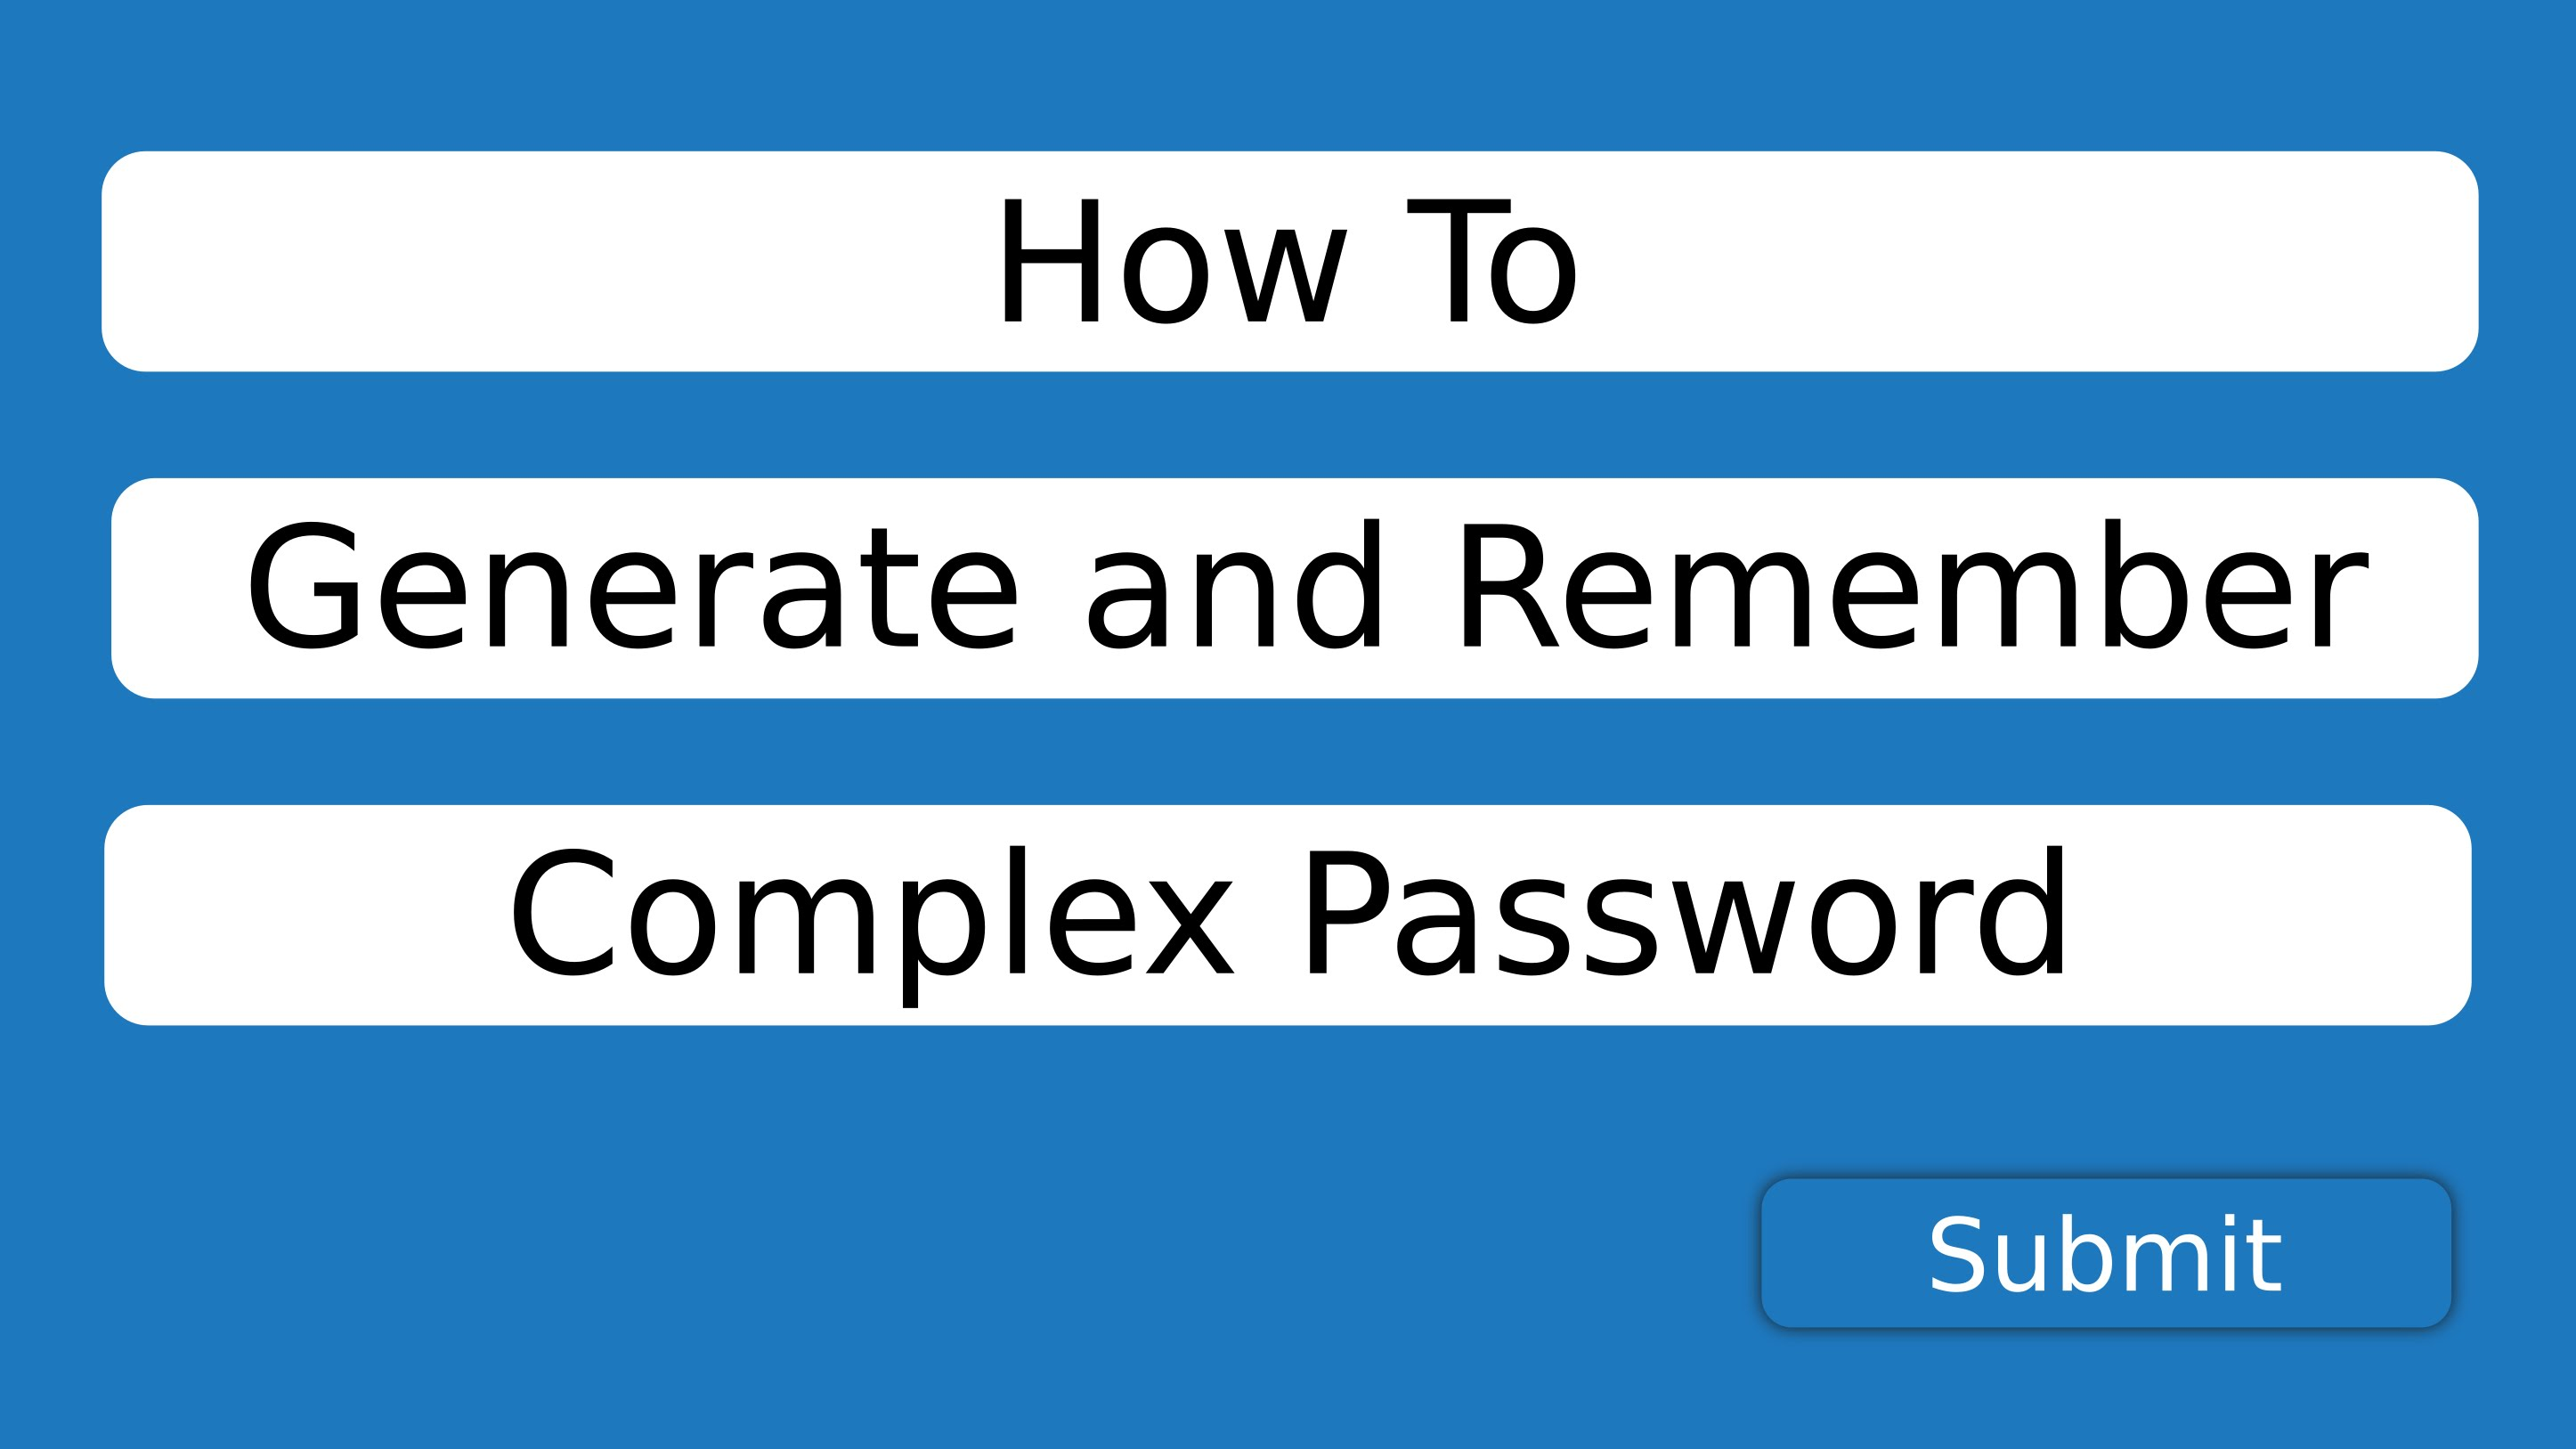 How to Generate and Remember Complex Password